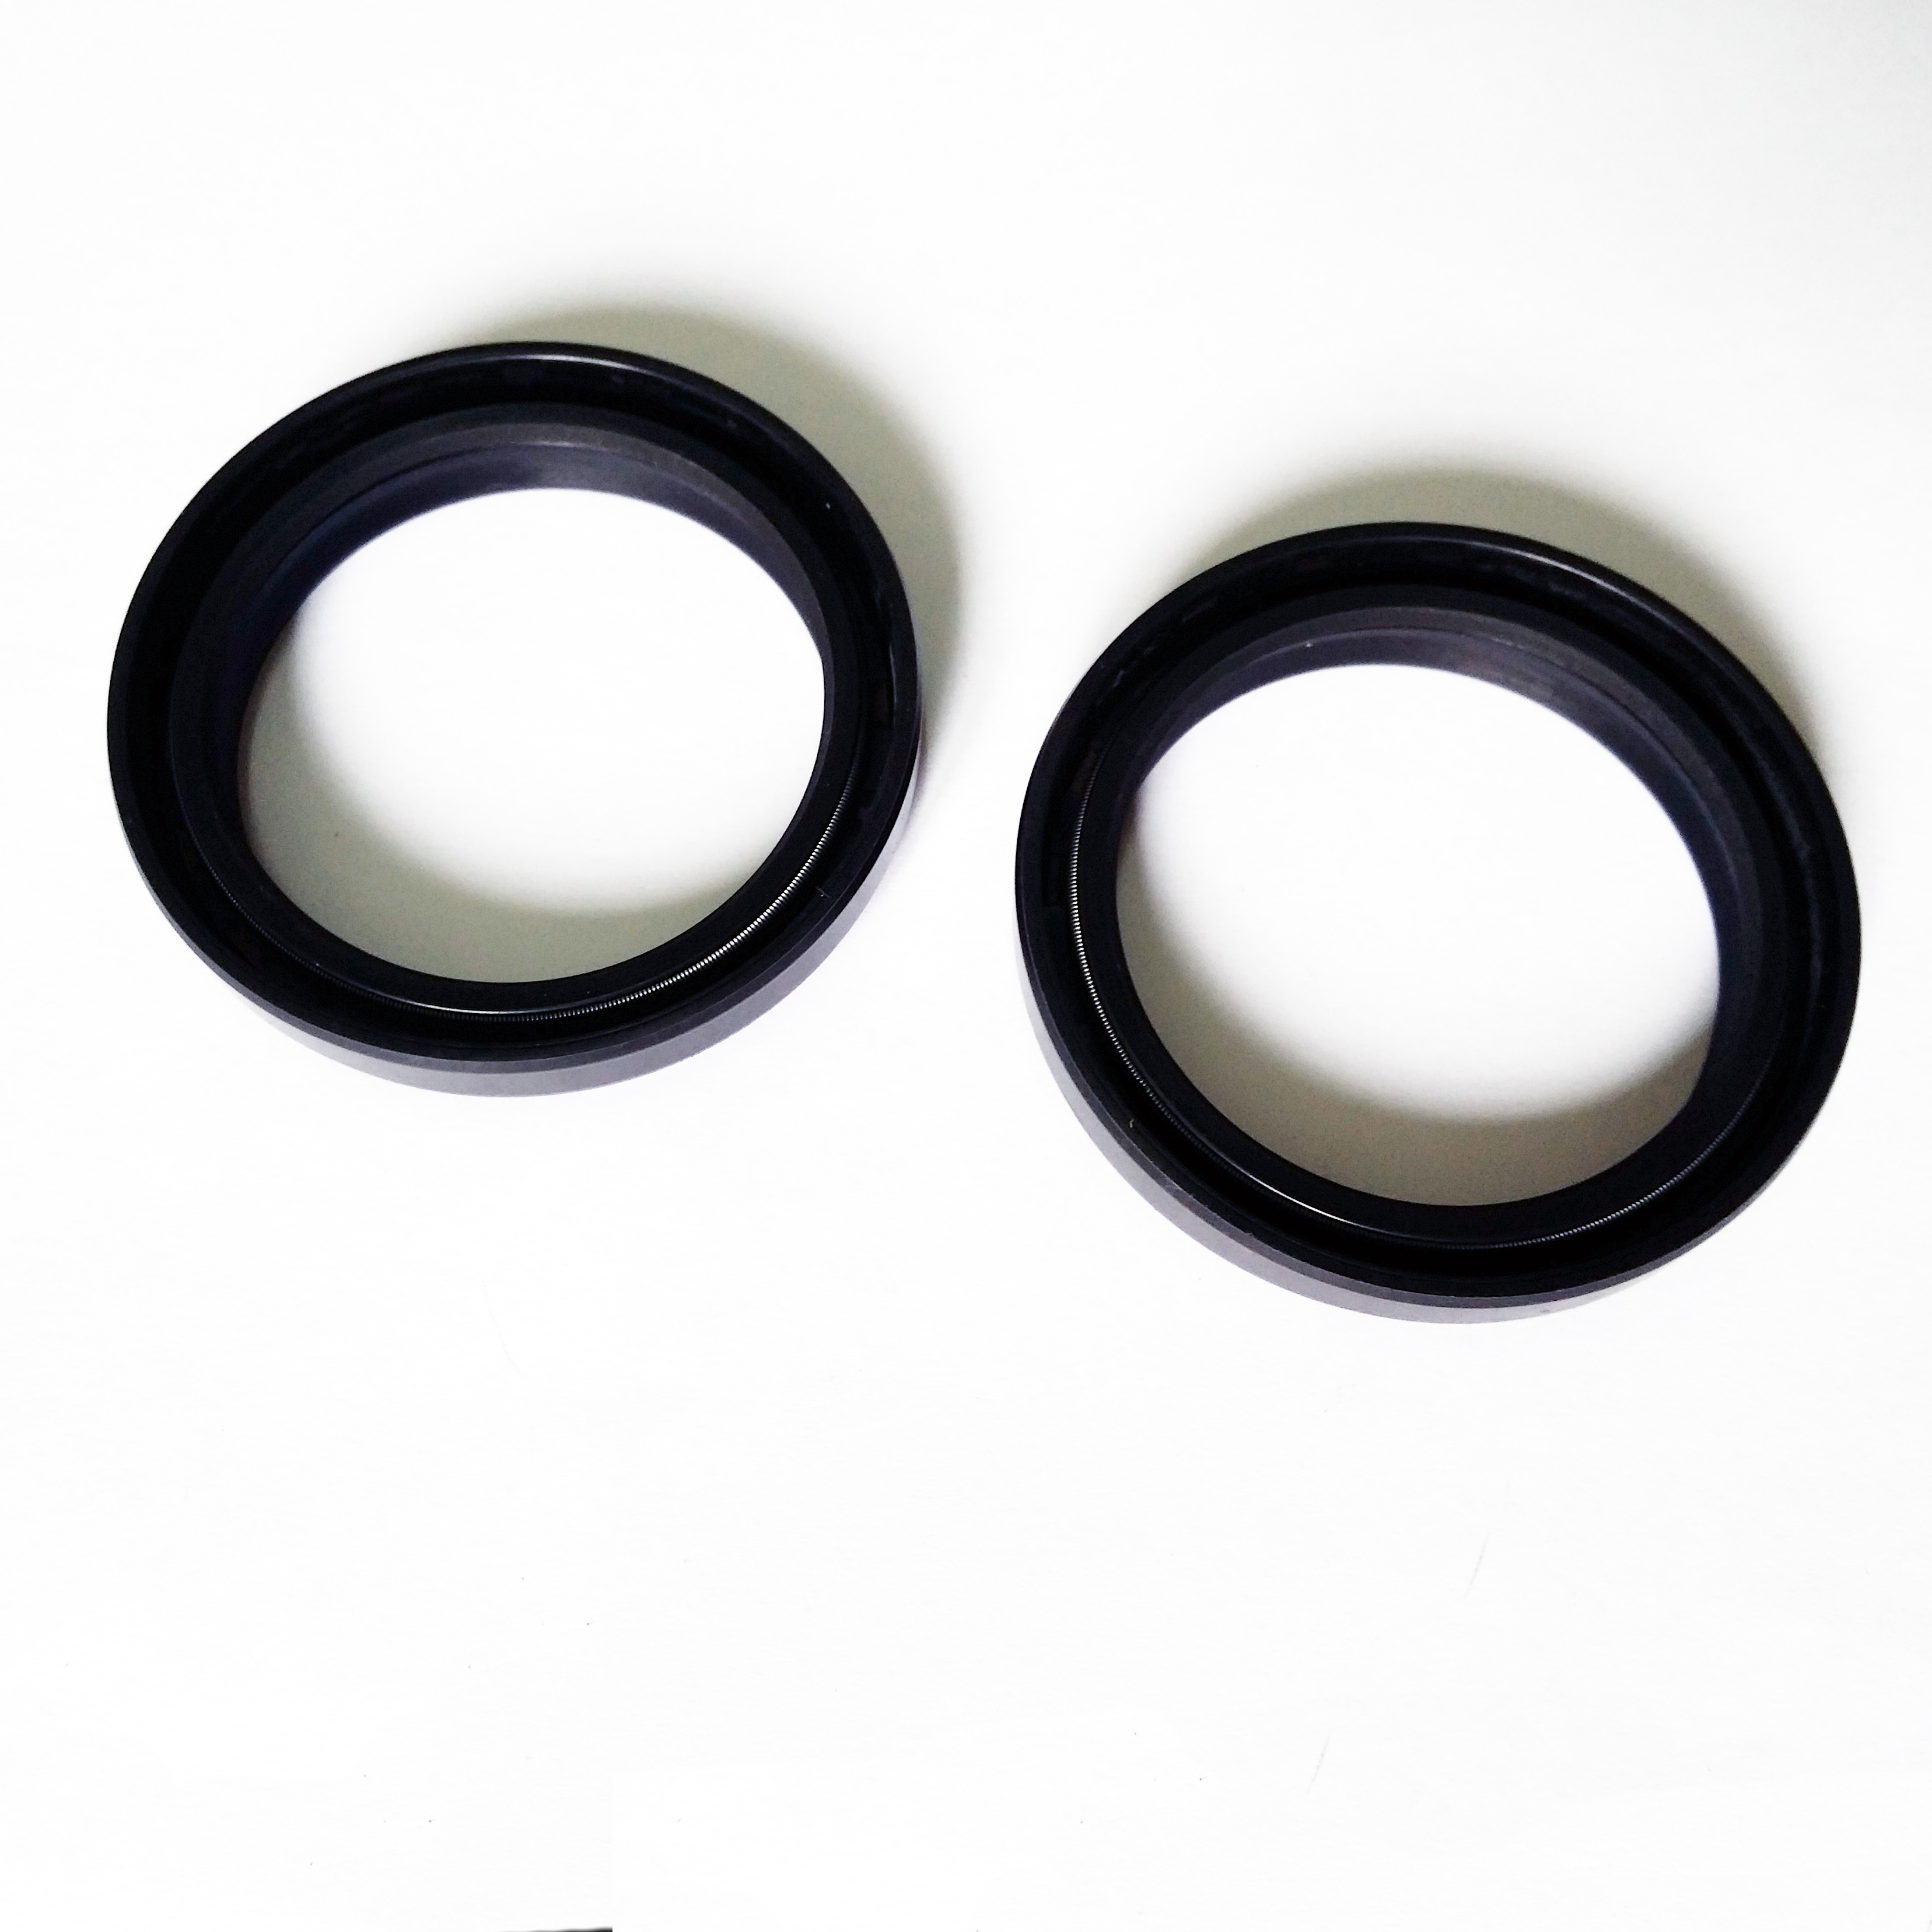 K-Tech Husaberg TE125 2010-2013 NOK Front Fork Oil Seals